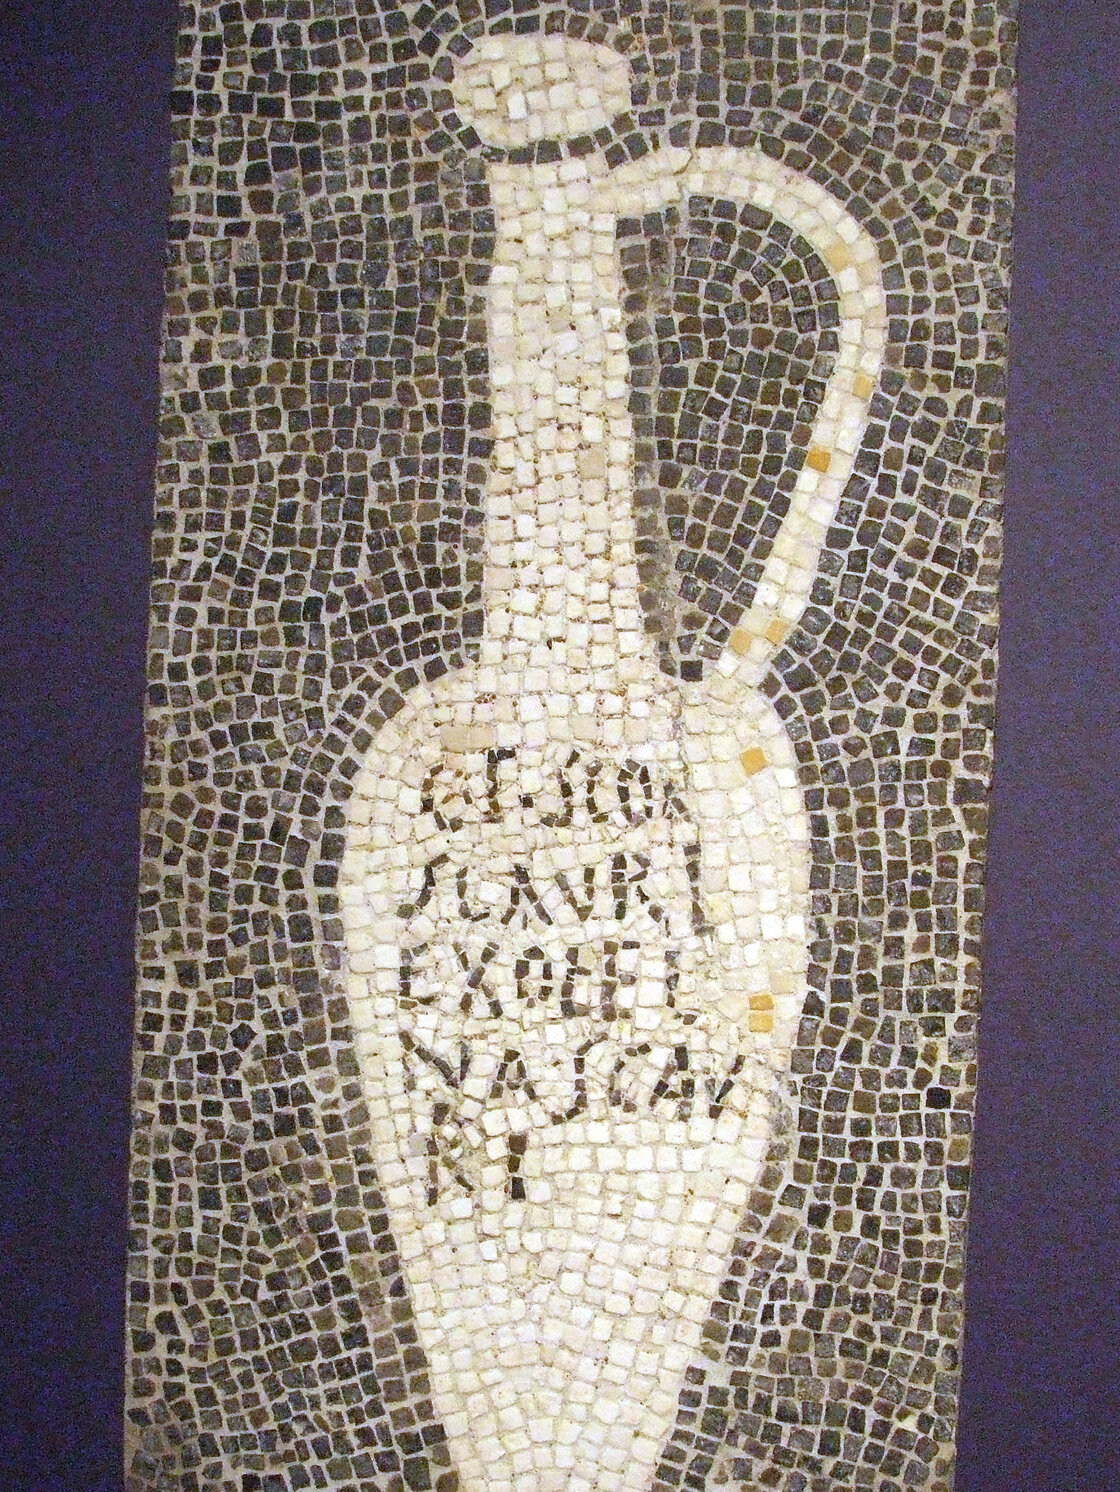 Fish sauce was a staple in Ancient Roman cooking. This mosaic, from Pompeii, would have decorated the floor of a garum shop.